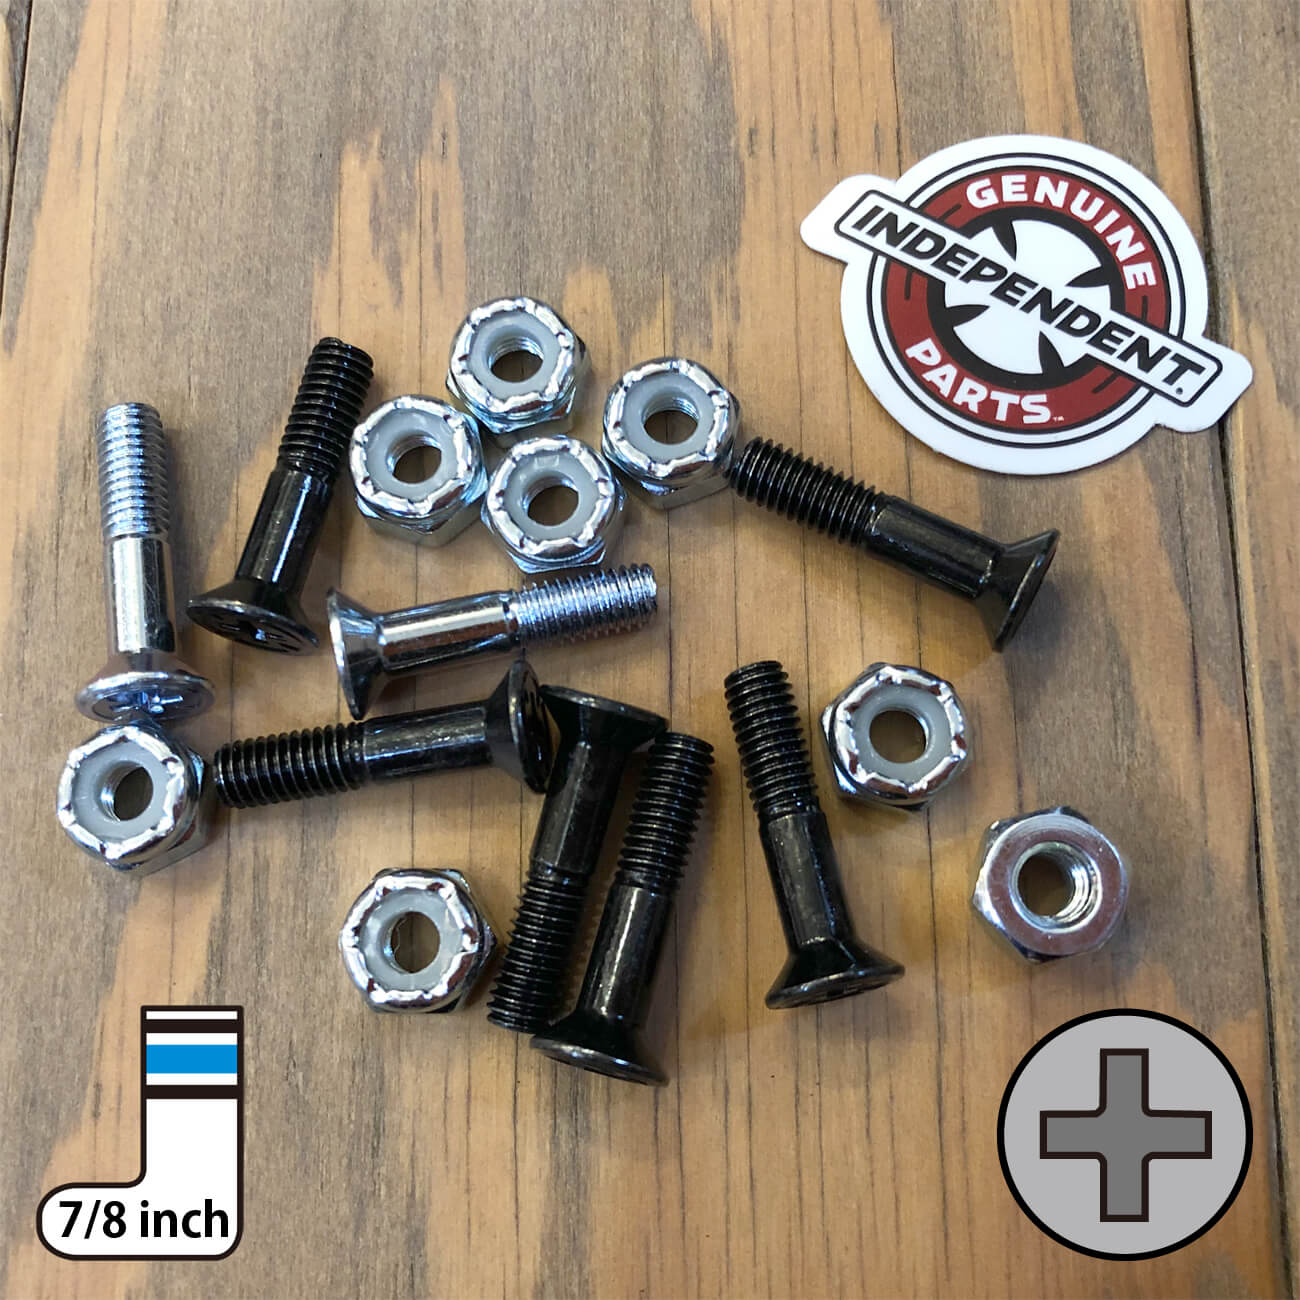 INDEPENDENT CROSS BOLTS 7/8inch SILVER PHILLIPS(プラス)